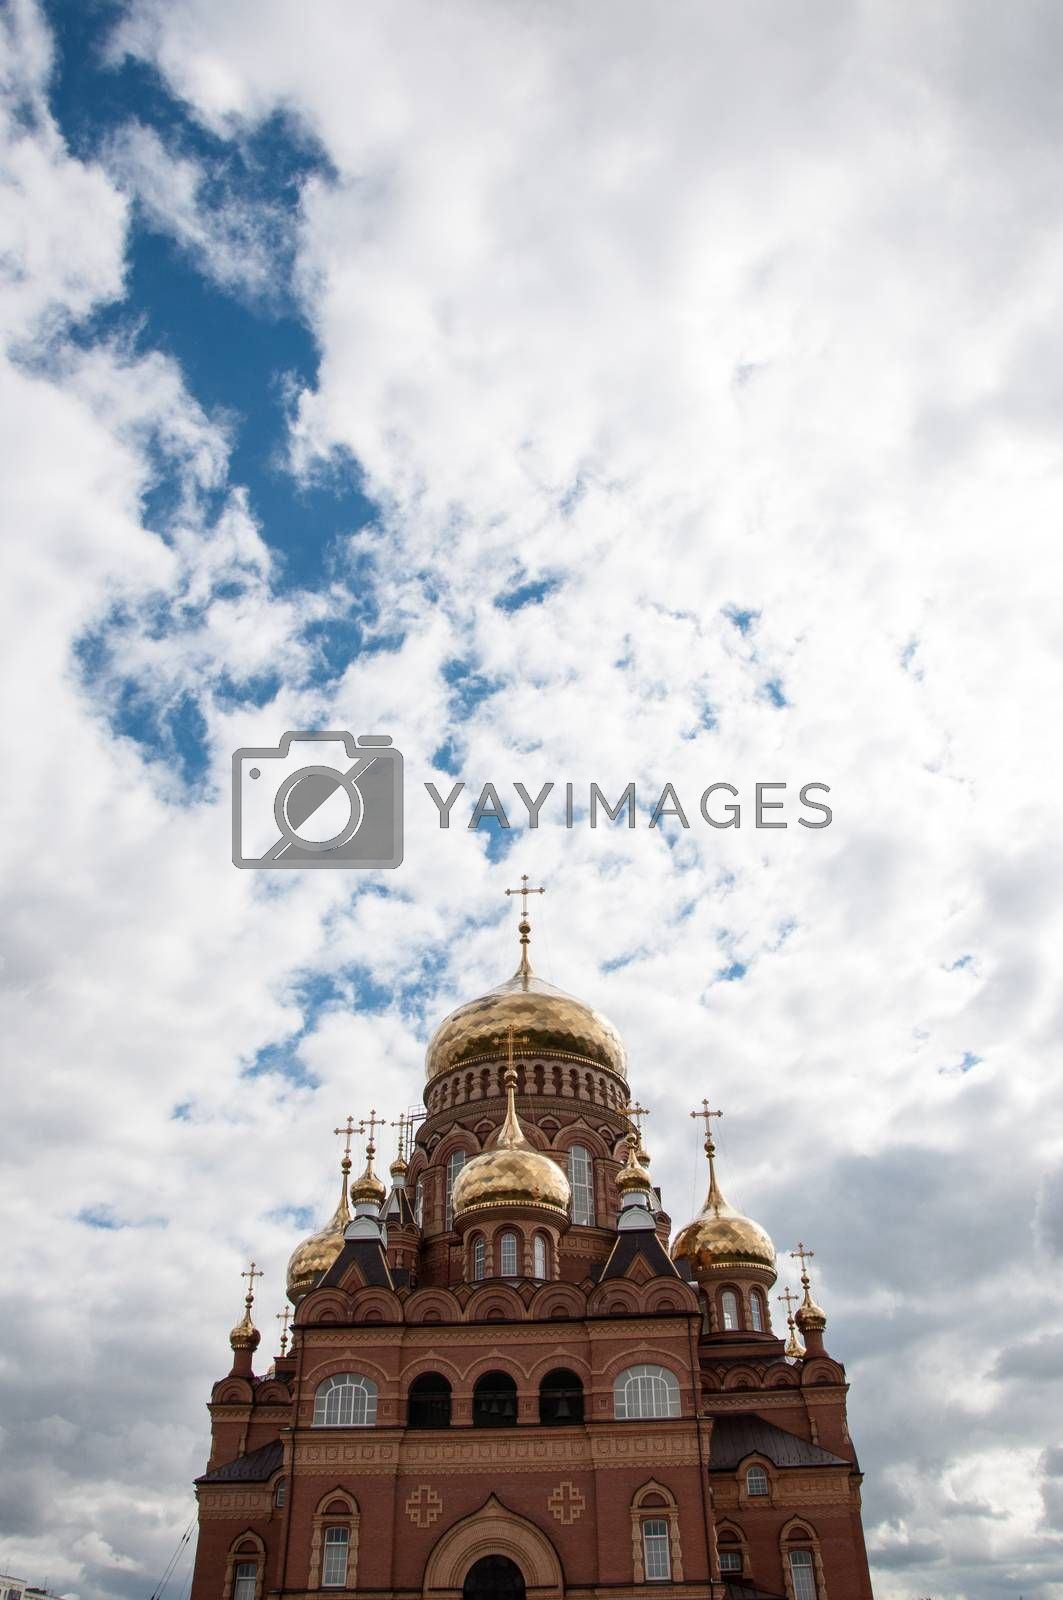 The dome of the Christian Church built on a natural border between Europe and Asia in Orenburg